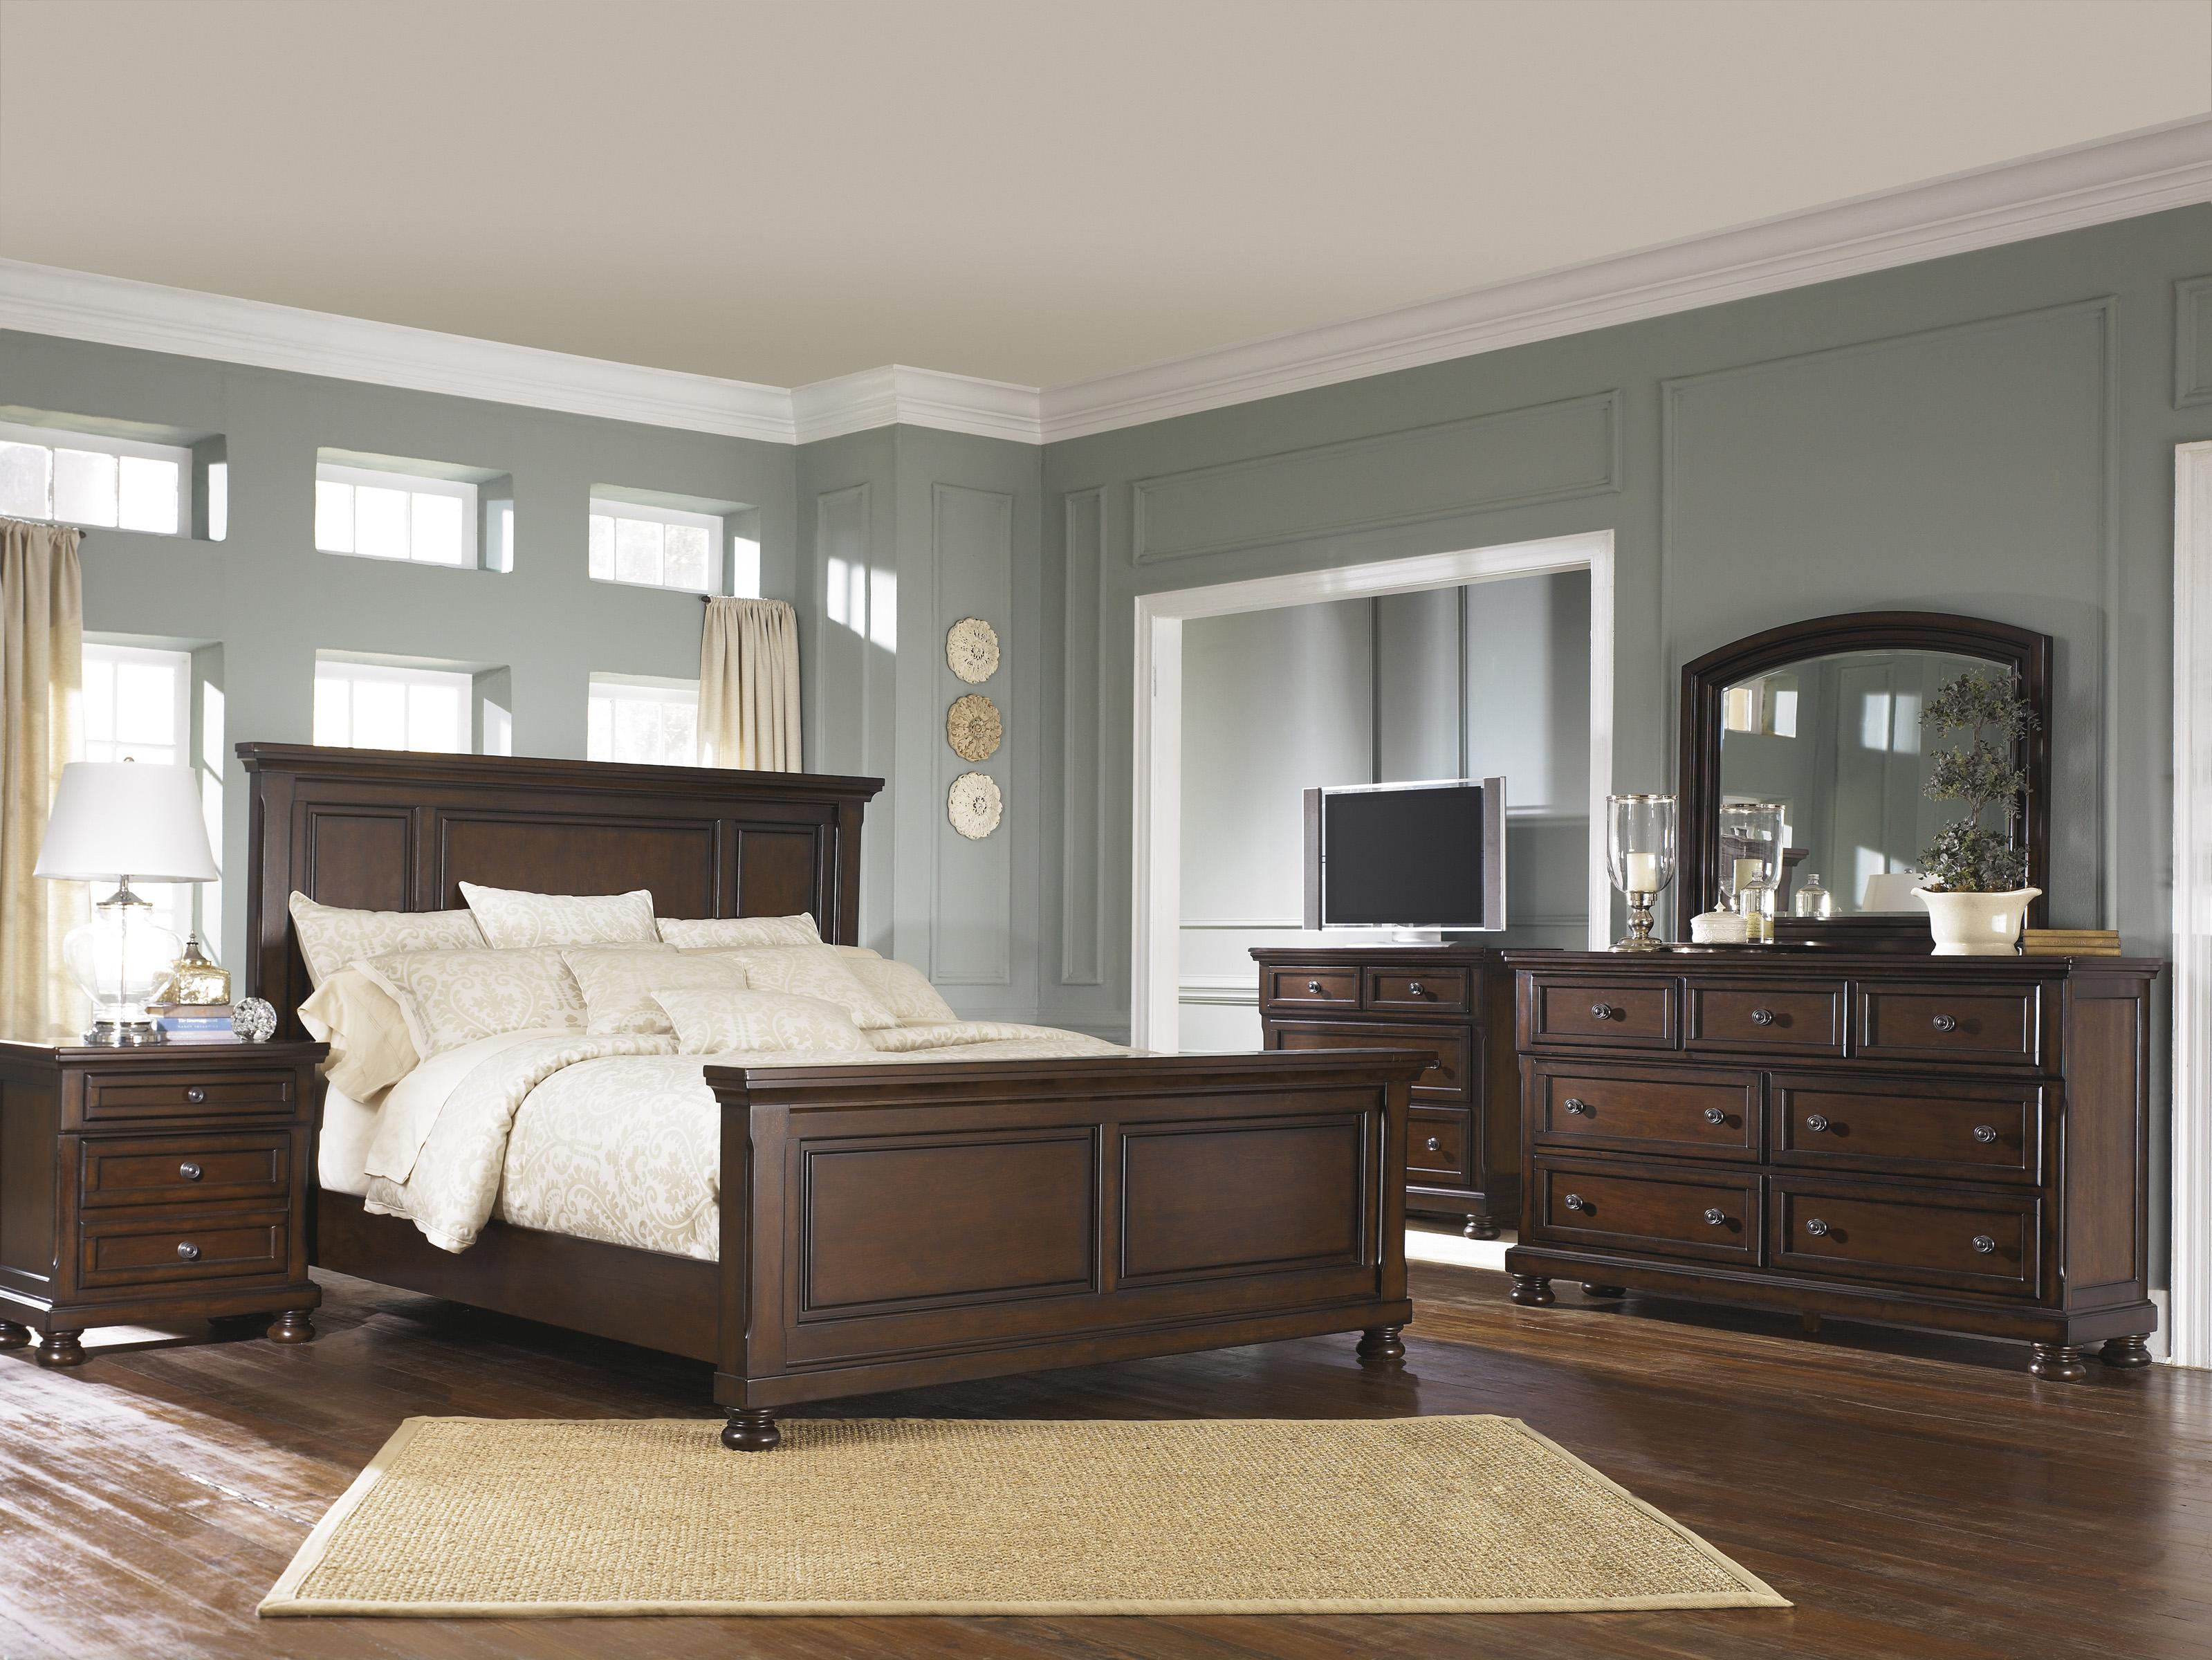 Ashley Furniture Porter House King Bedroom Group - Item Number: B697 K Bedroom Group 2